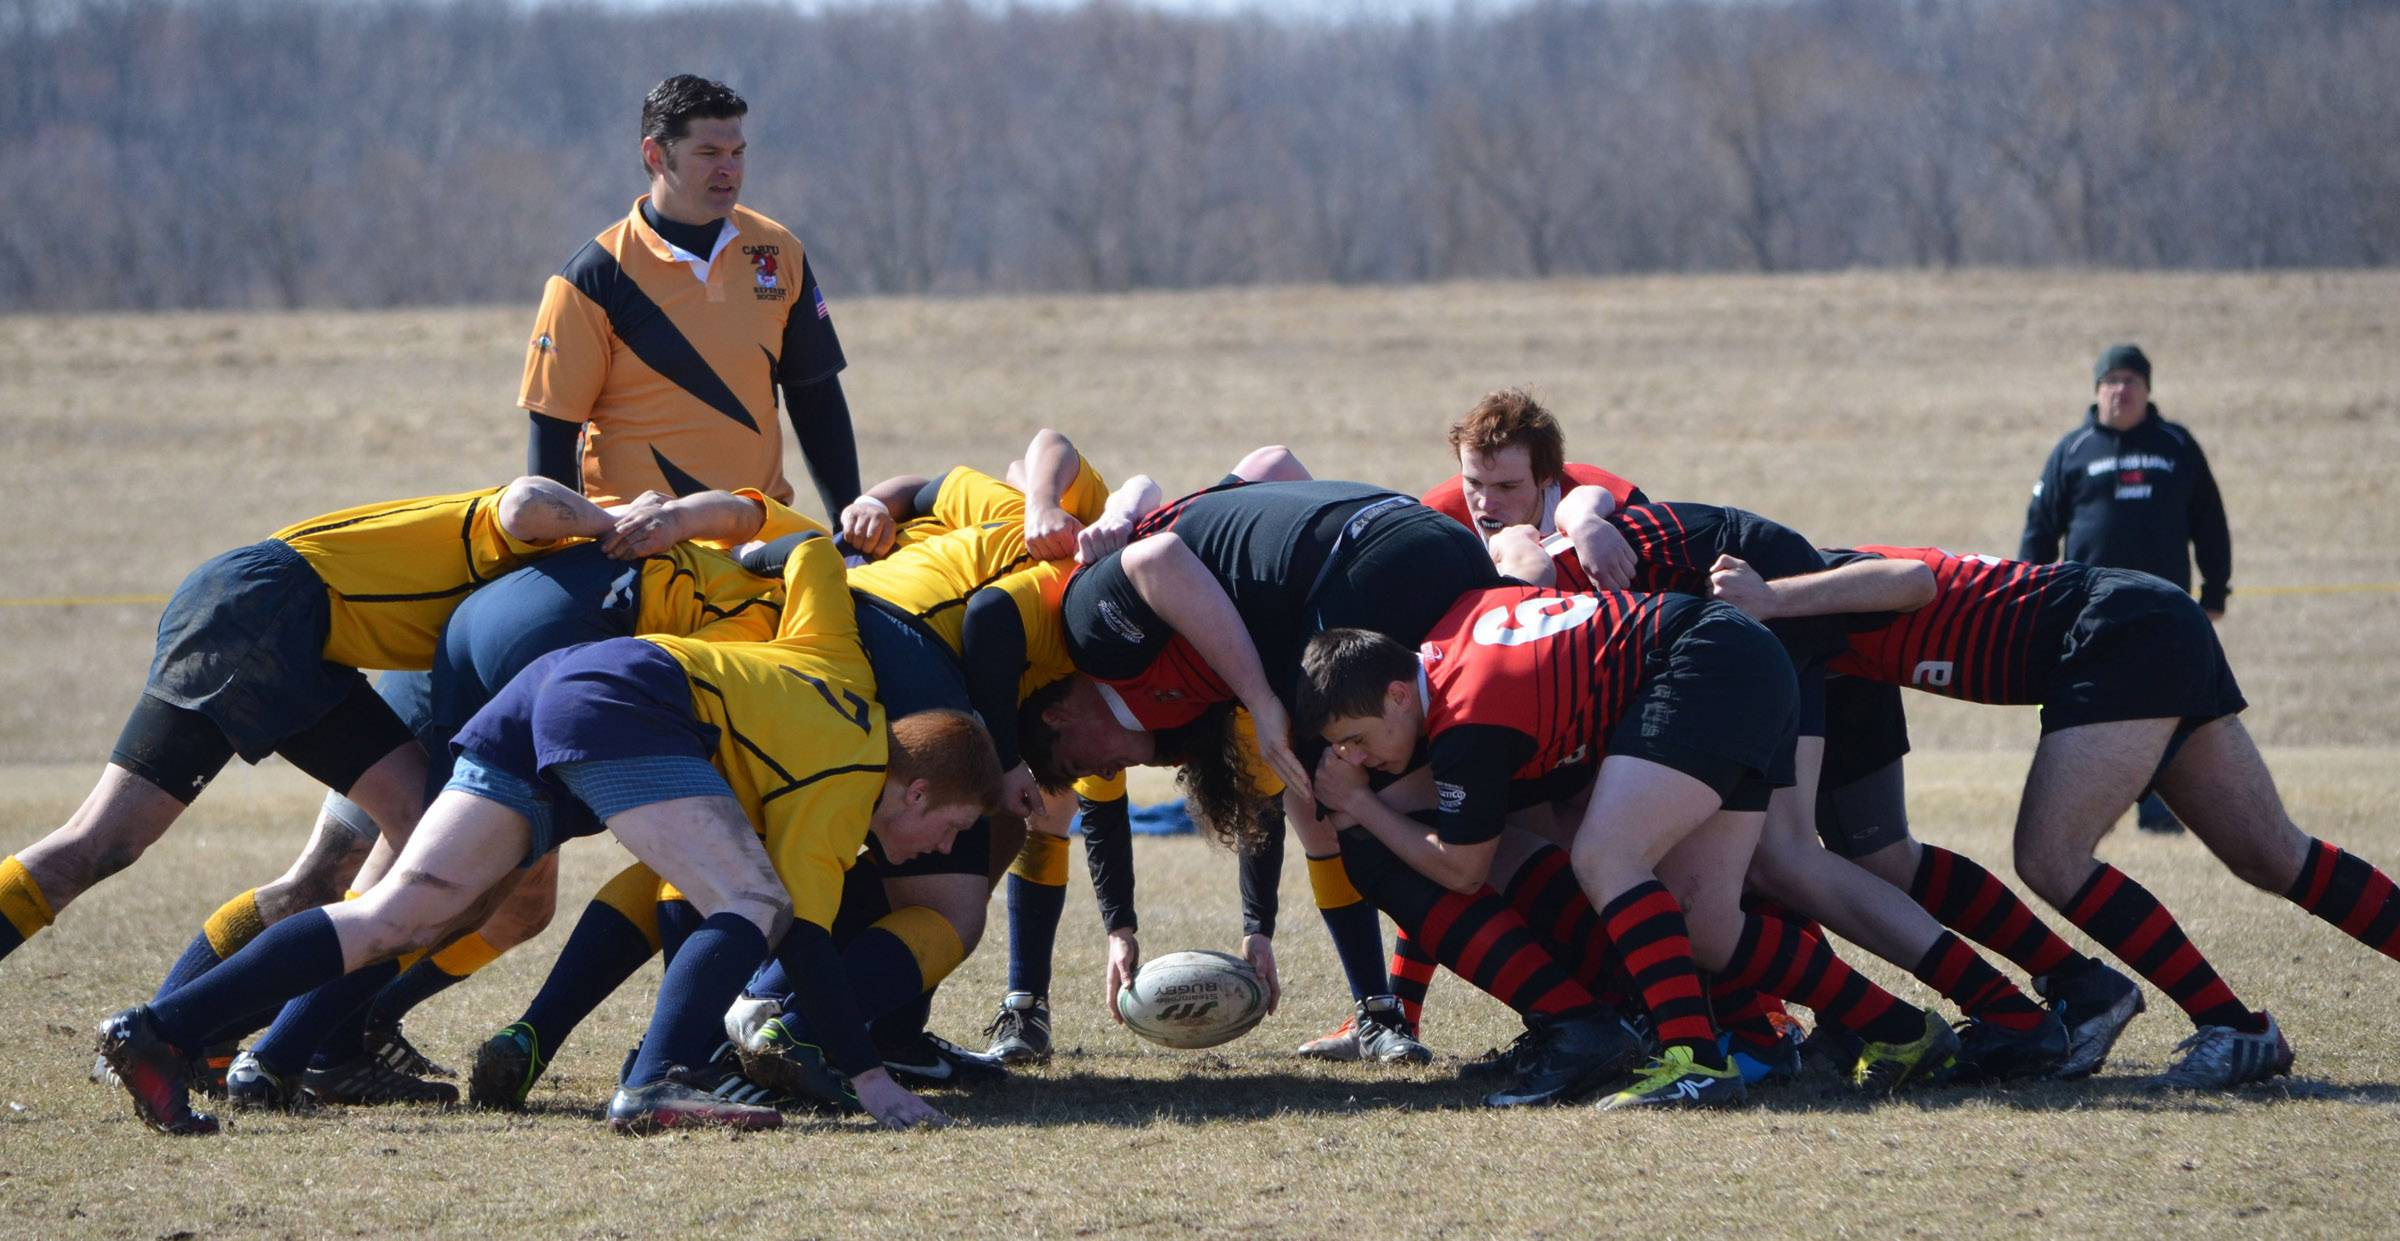 Members of the Palatine Barbarians High School Rugby Club are involved in a scrum during a junior varsity match played at Busse Woods against the Arlington Stallions on April 5.